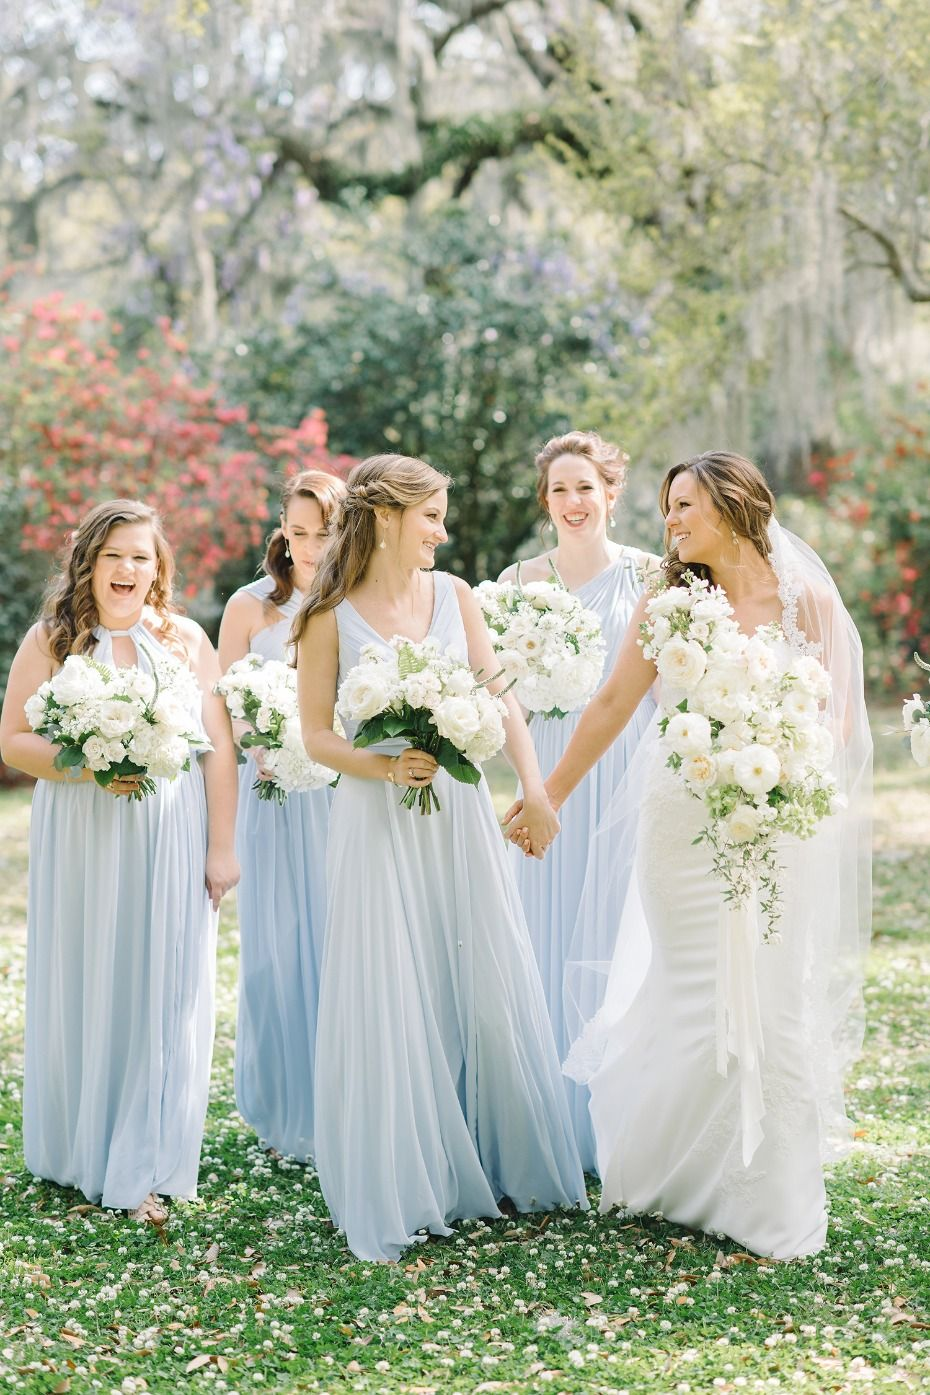 A Classic Pastel Blue And White Outdoor Wedding For 70k Classic Wedding Hair Blue Bridesmaids Blue Bridesmaid Dresses [ 1395 x 930 Pixel ]